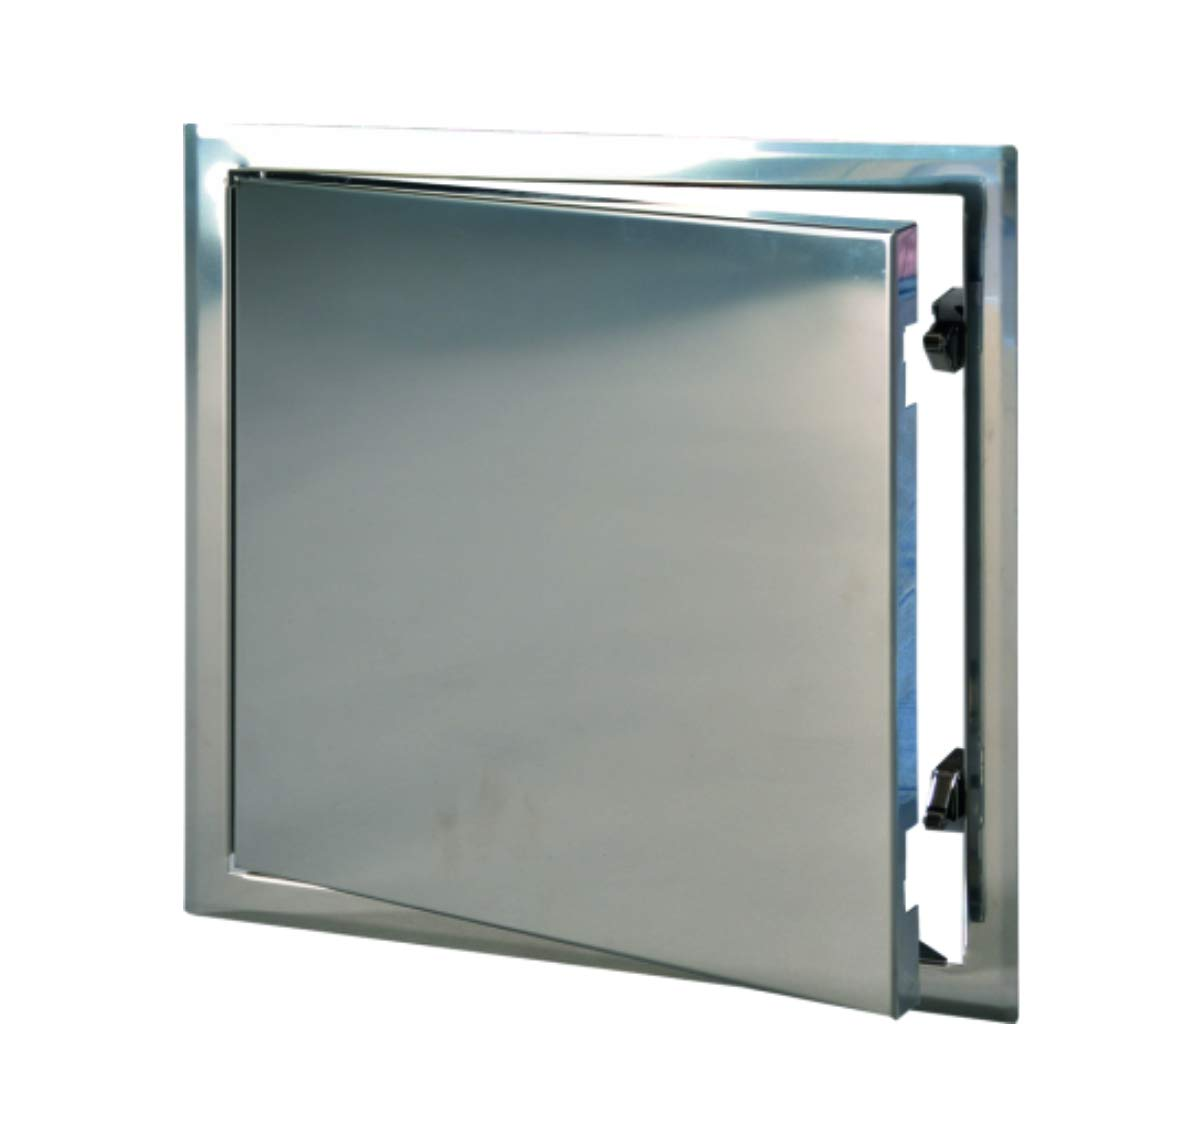 8x8 Stainless Steel Access Door with Touch Latch for Walls and Ceilings, B2-Series